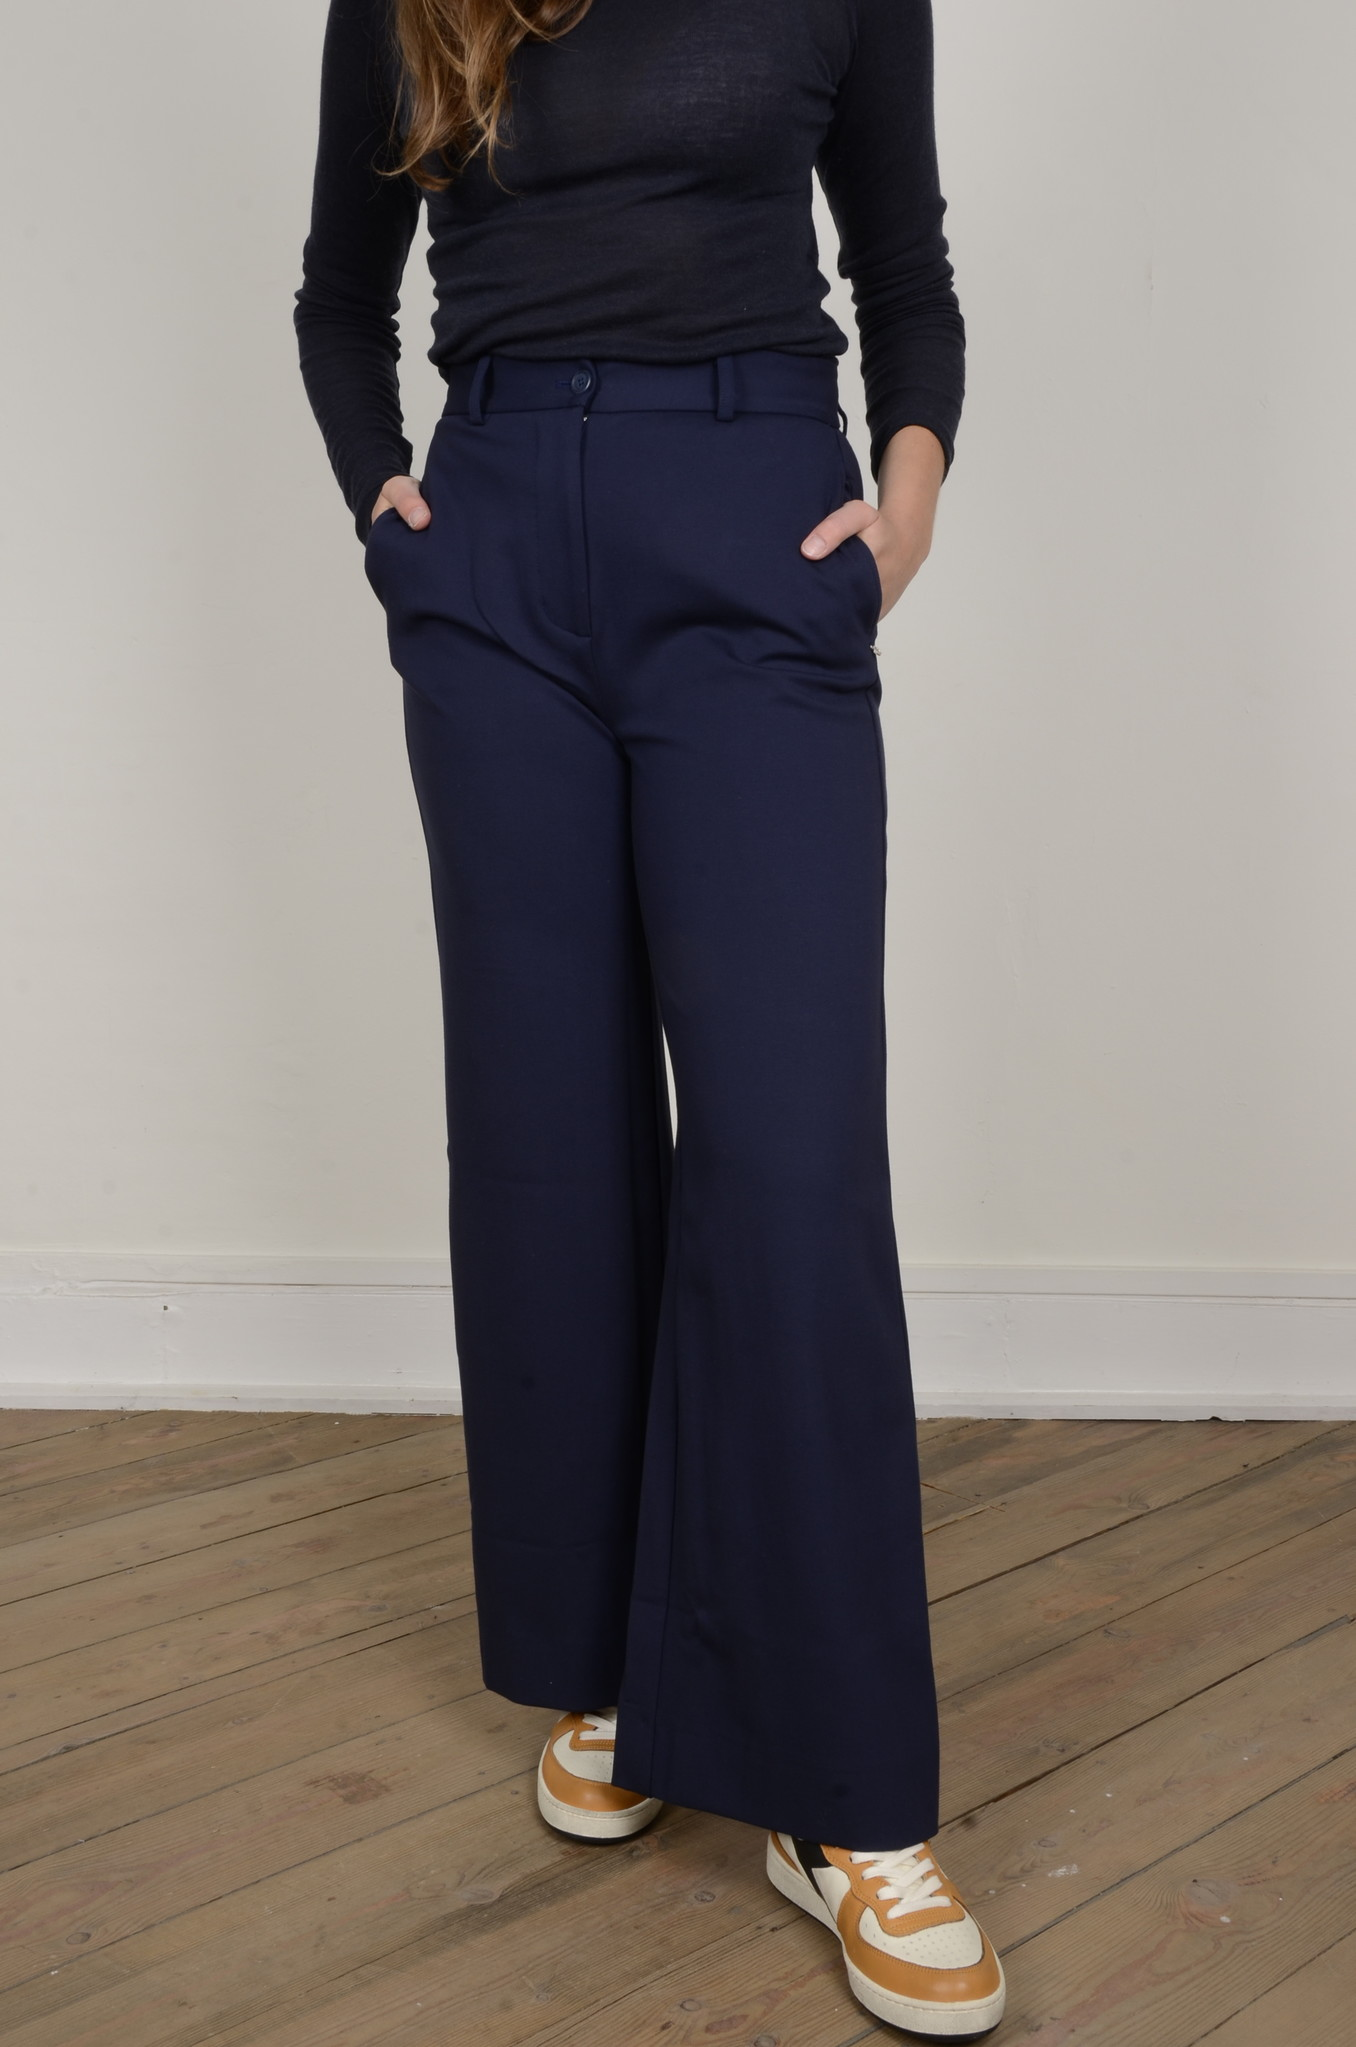 NAVY FLARED TROUSERS-5